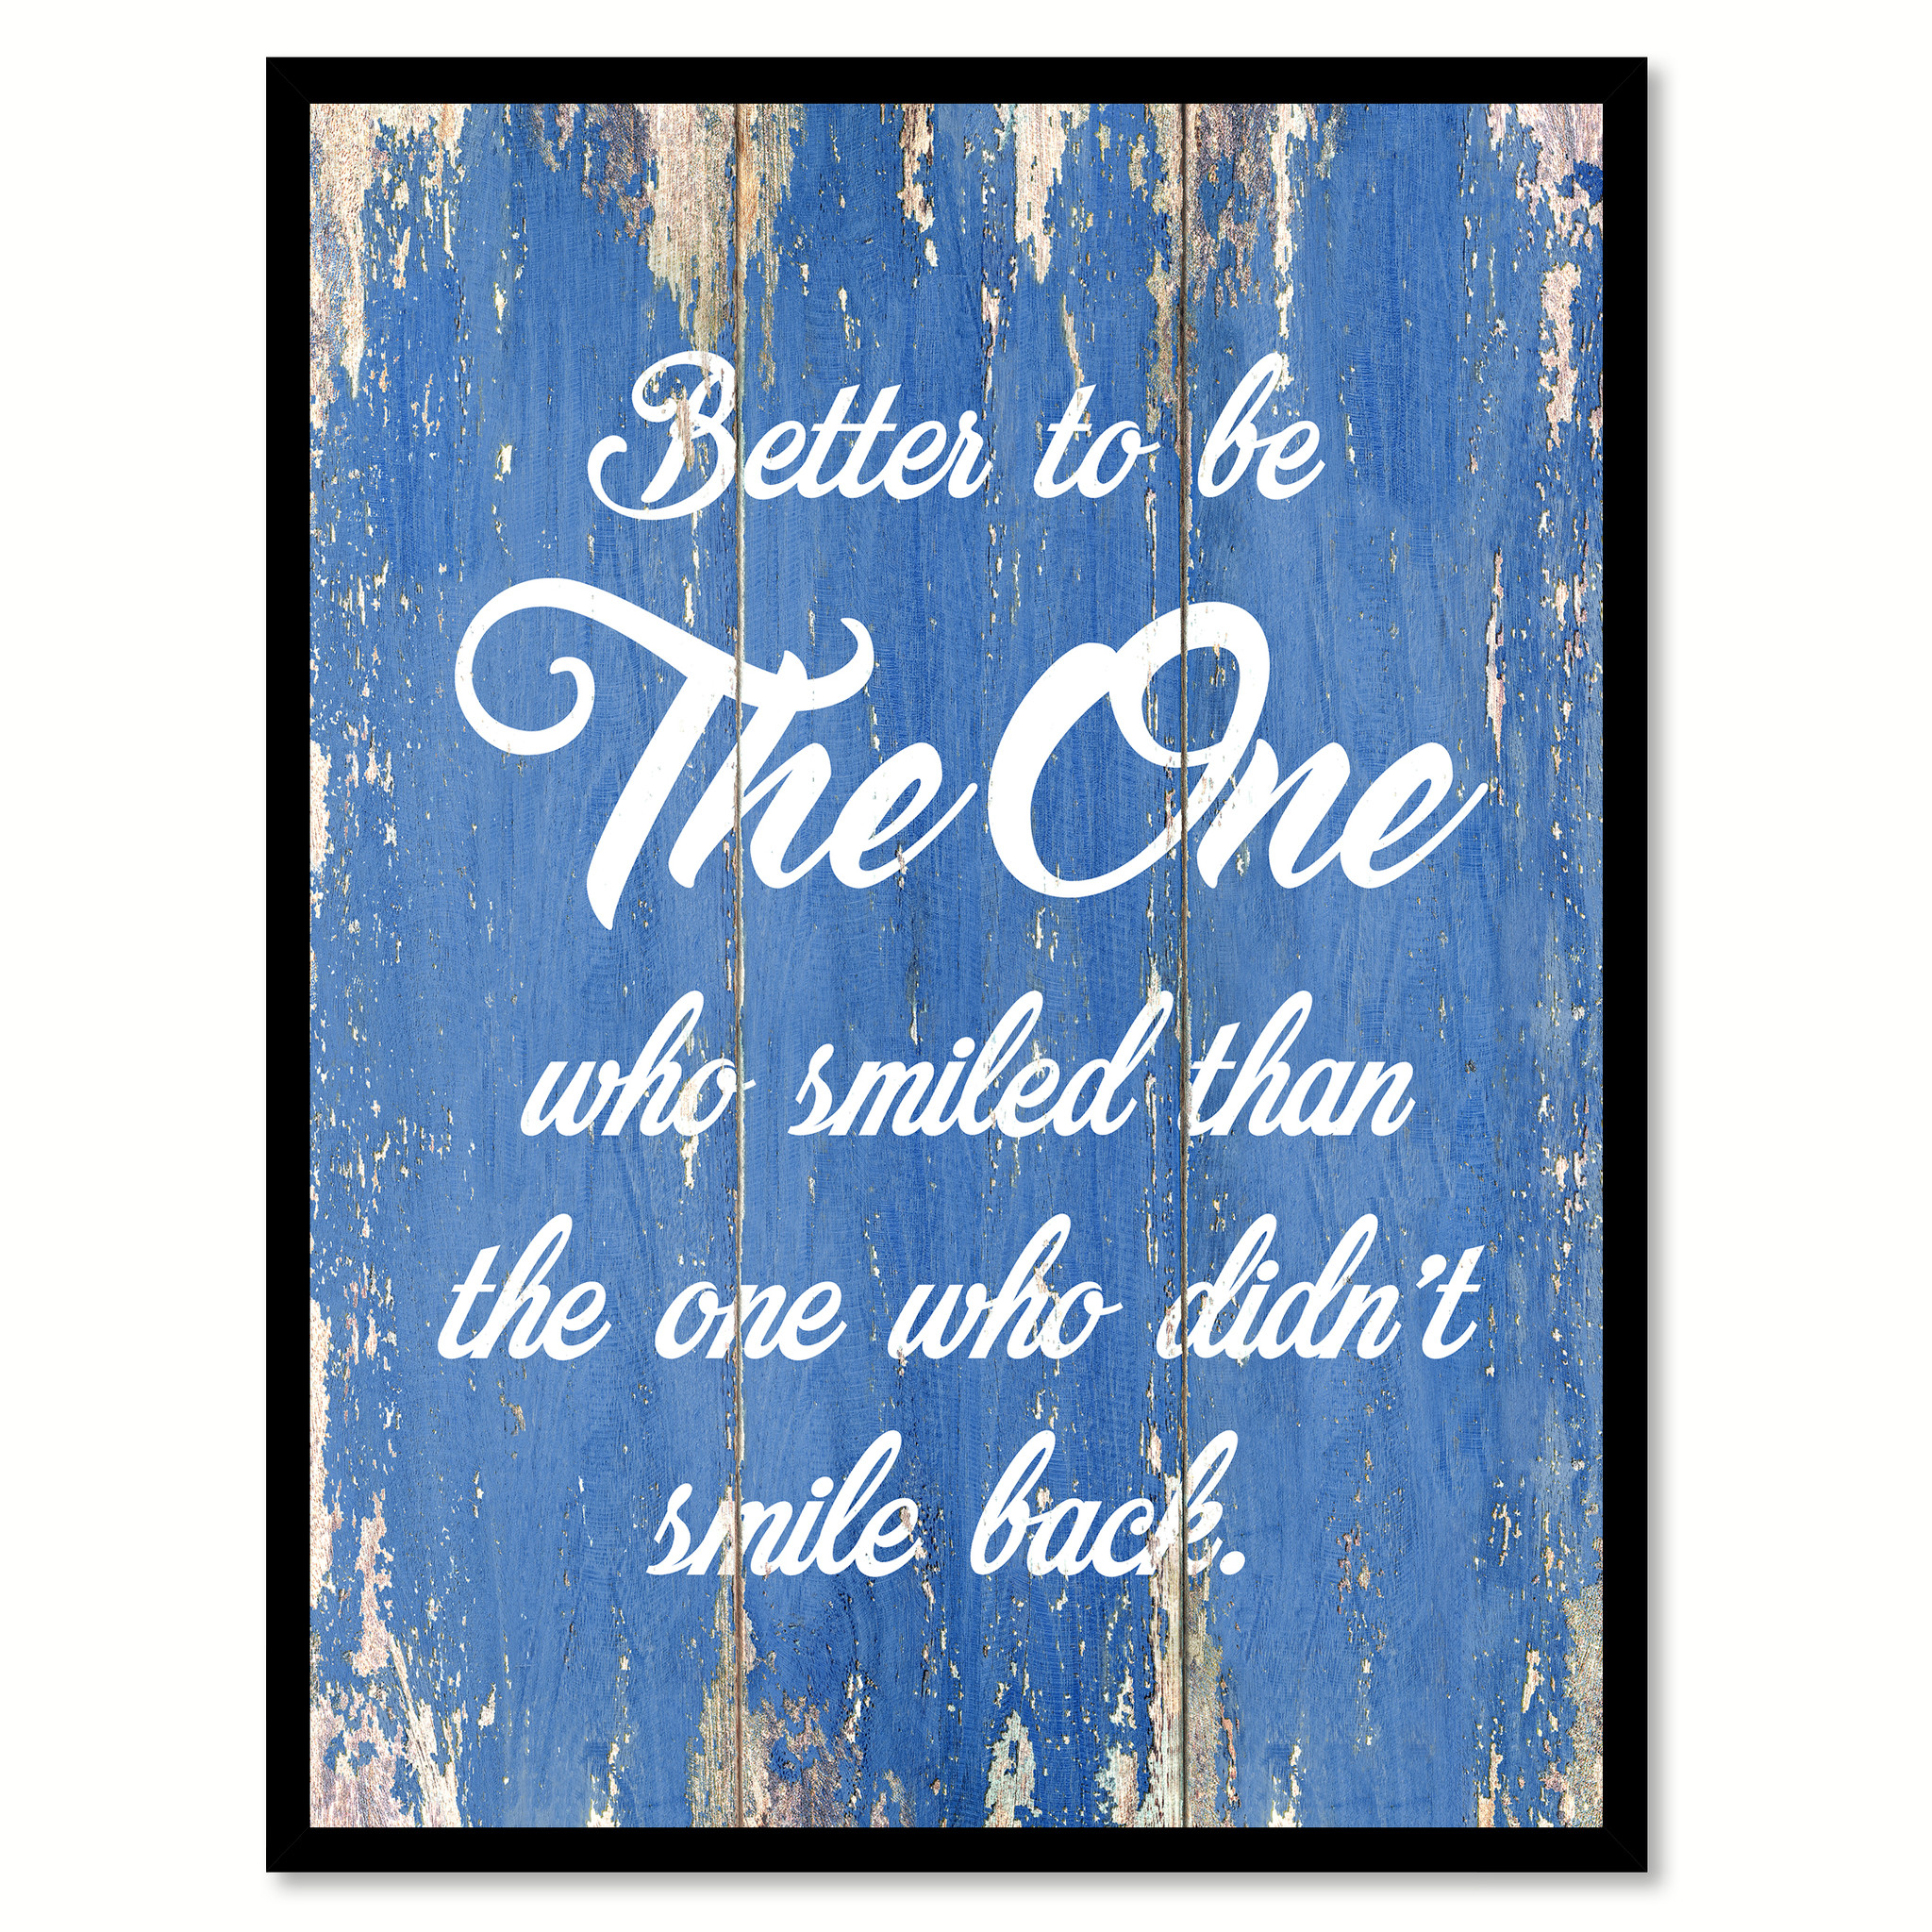 "Better To Be The One Who Smiled Than The One Quote Saying Canvas Print with Picture Frame Home Decor Wall Art Gifts 121780 - 7""x9\"""